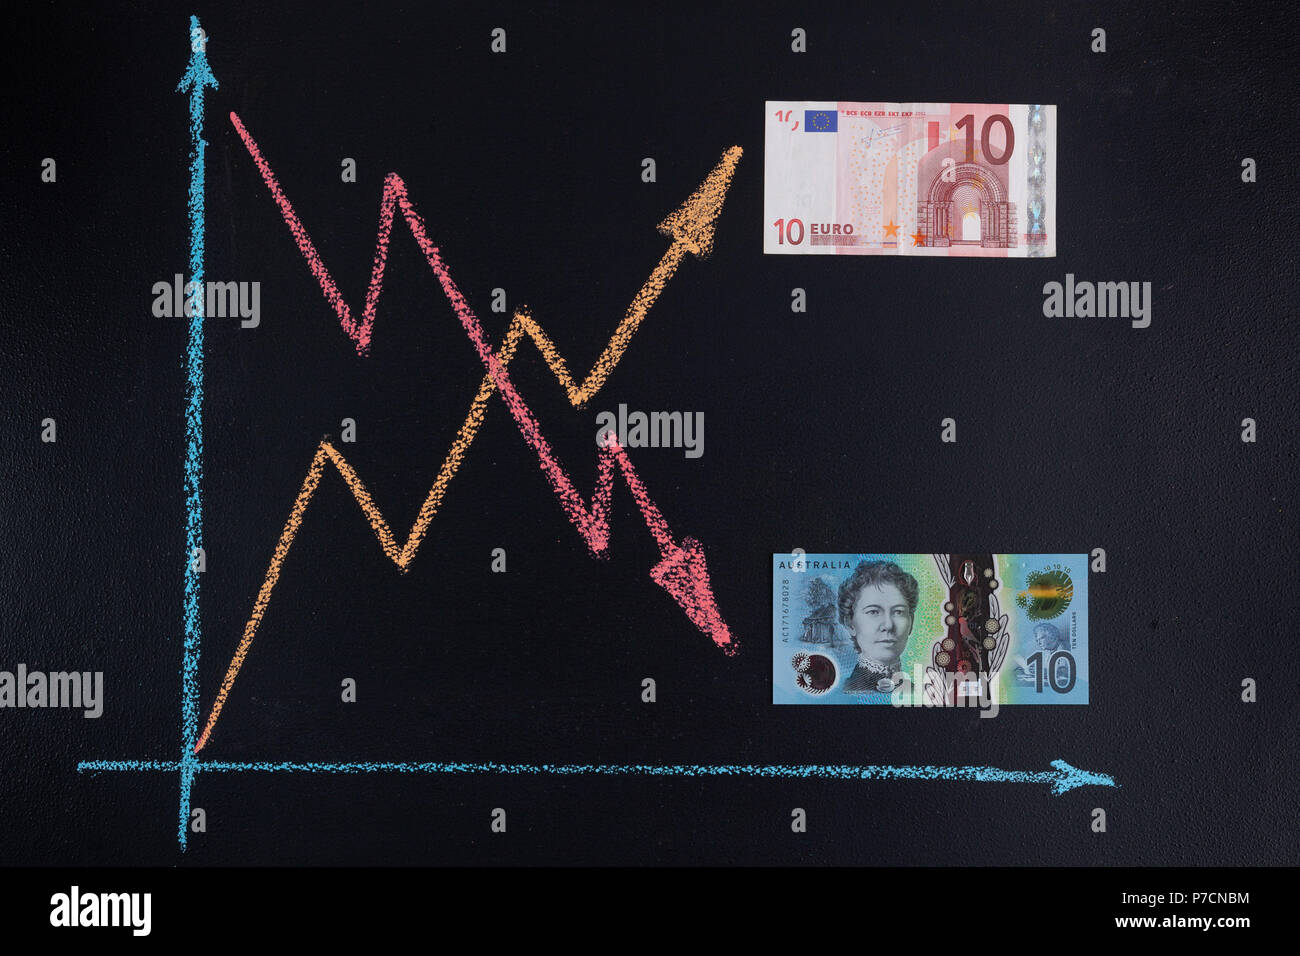 Forex currency trends concept - AUD going down while EUR going up. Depicted with chalkboard line graph and paper currency. - Stock Image